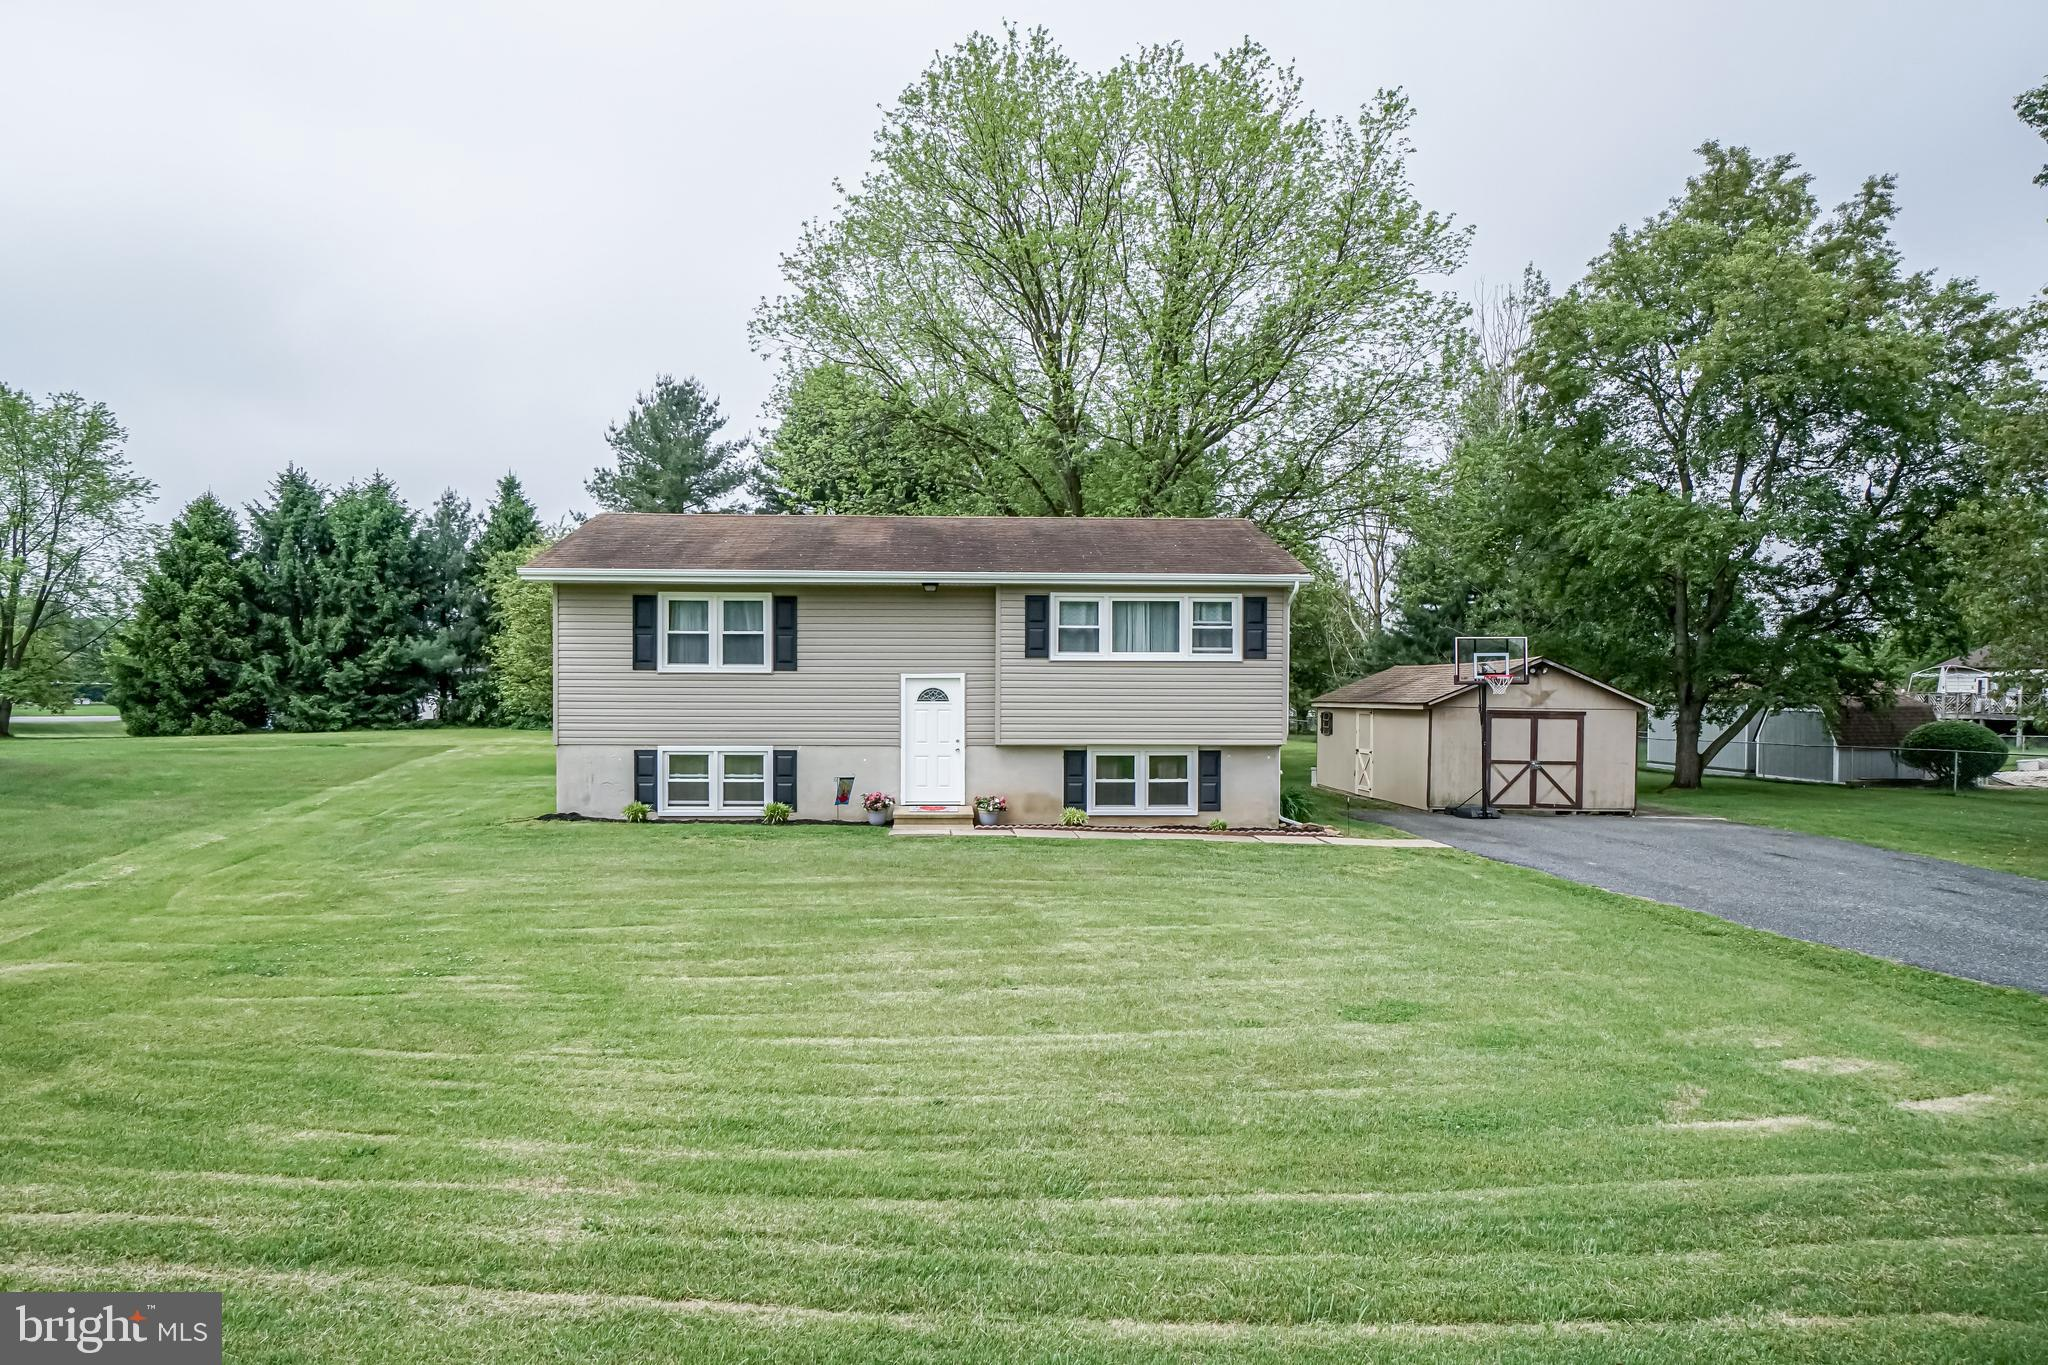 Lovely home located in a quiet cul-de-sac on an almost acre lot. The rear yard is perfect for entert